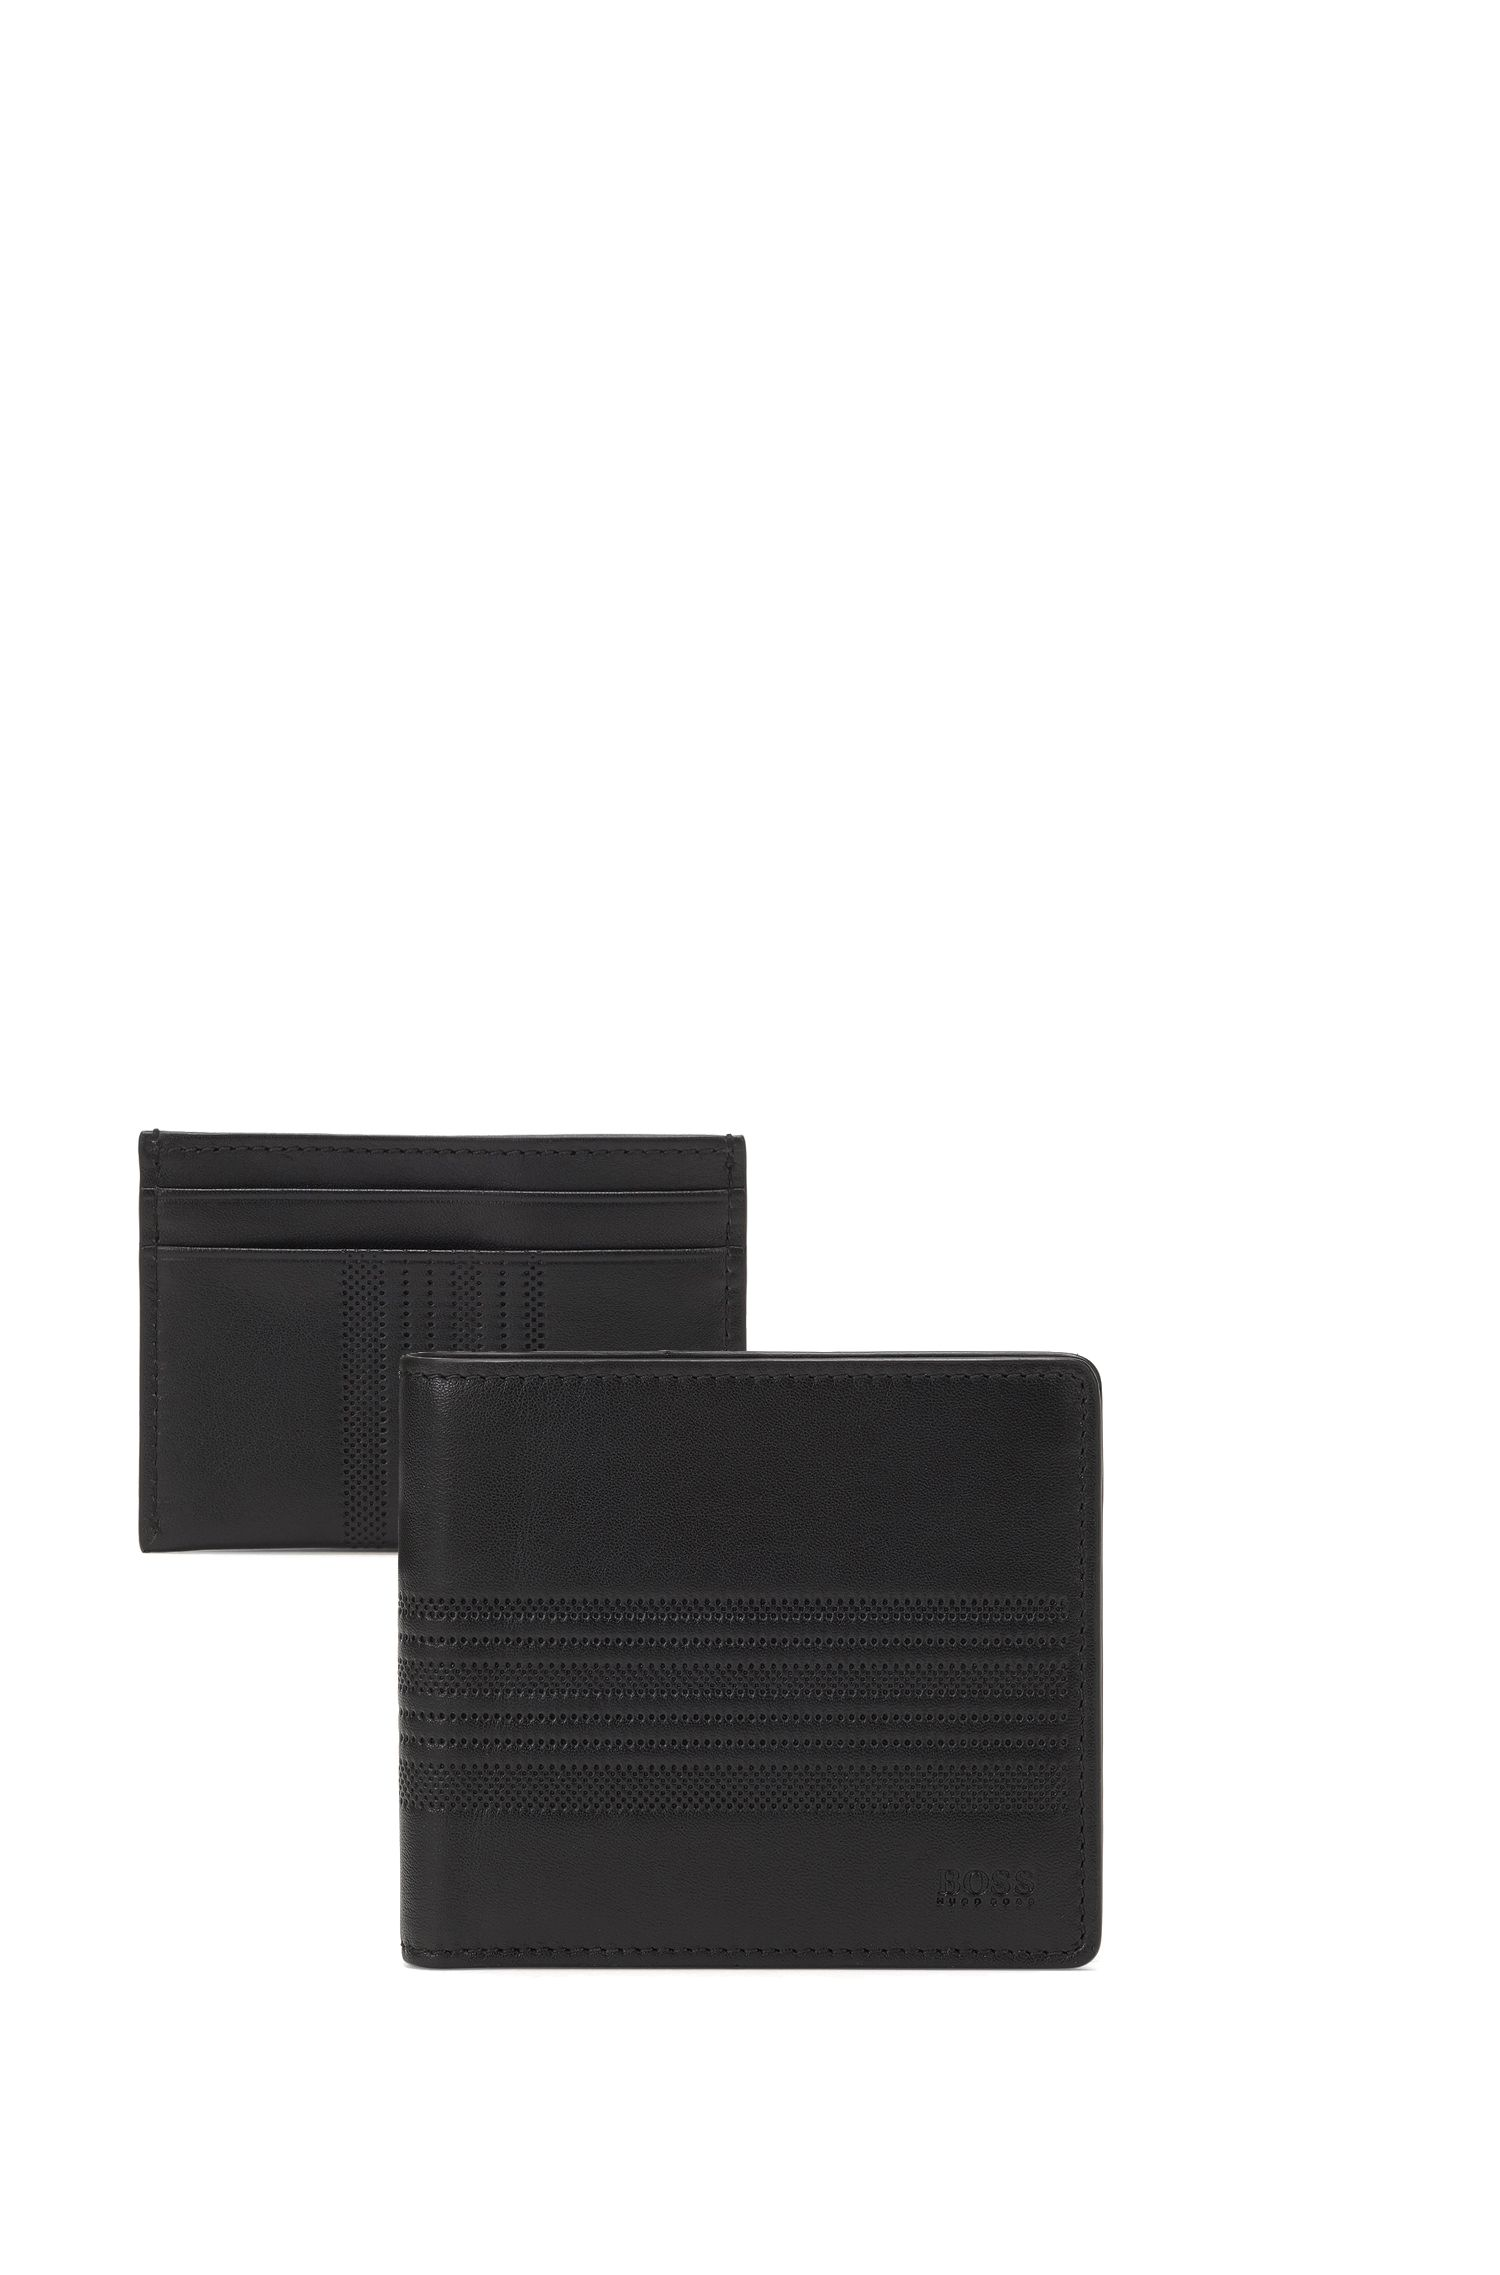 Leather wallet and card holder gift set with striped embossing